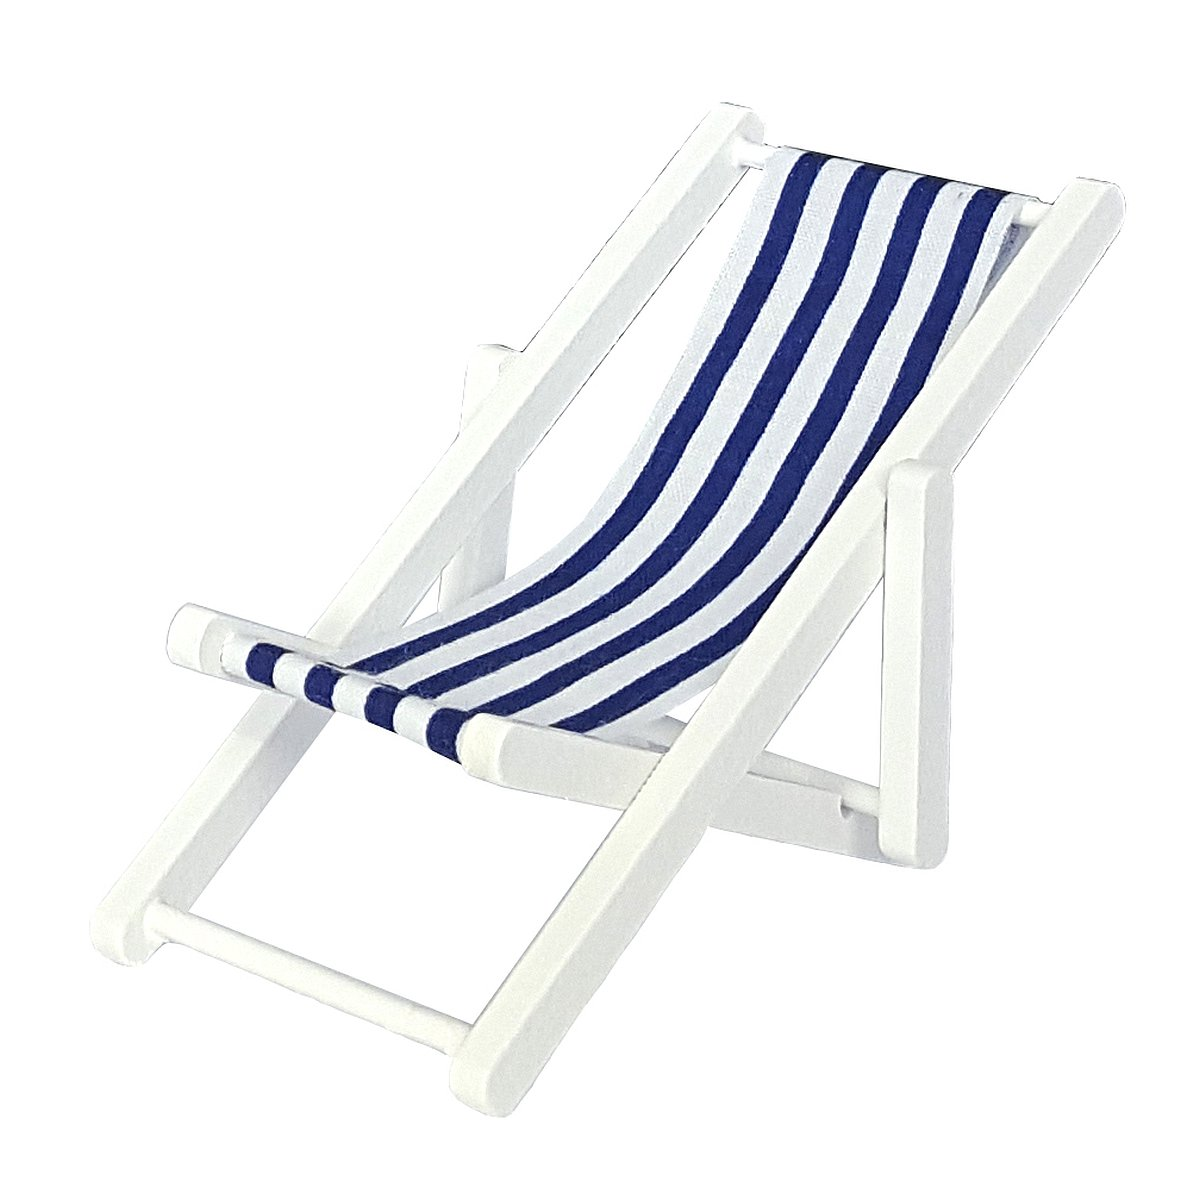 Strand deck chair white  sc 1 st  Mini Mundus & Strand deck chair white-41520